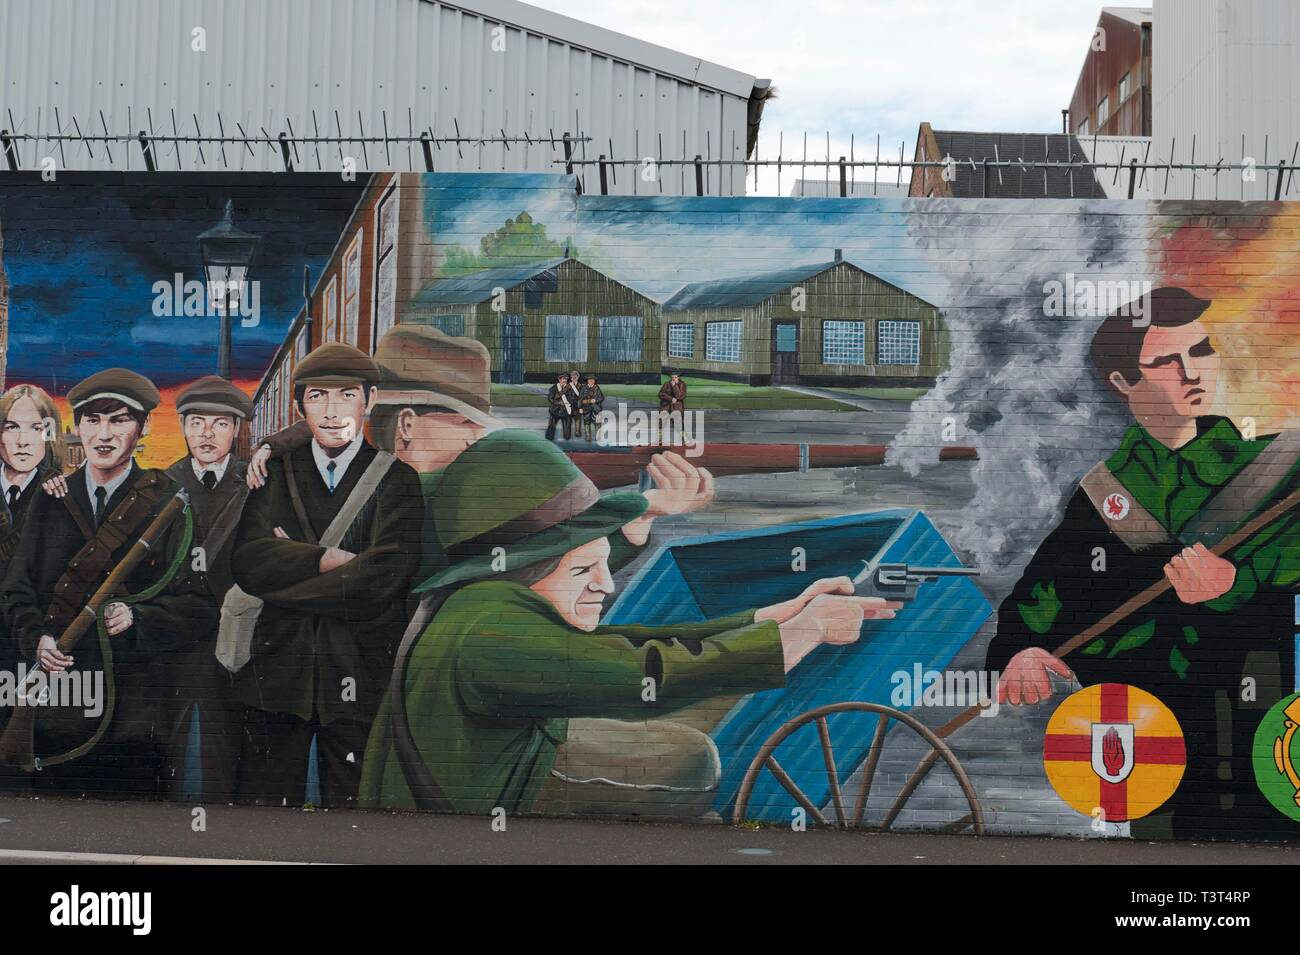 Paddy shoots, political graffiti at wall in West Belfast reminding of civil war between Protestants and Catholics, Belfast, County Antrim, Northern - Stock Image